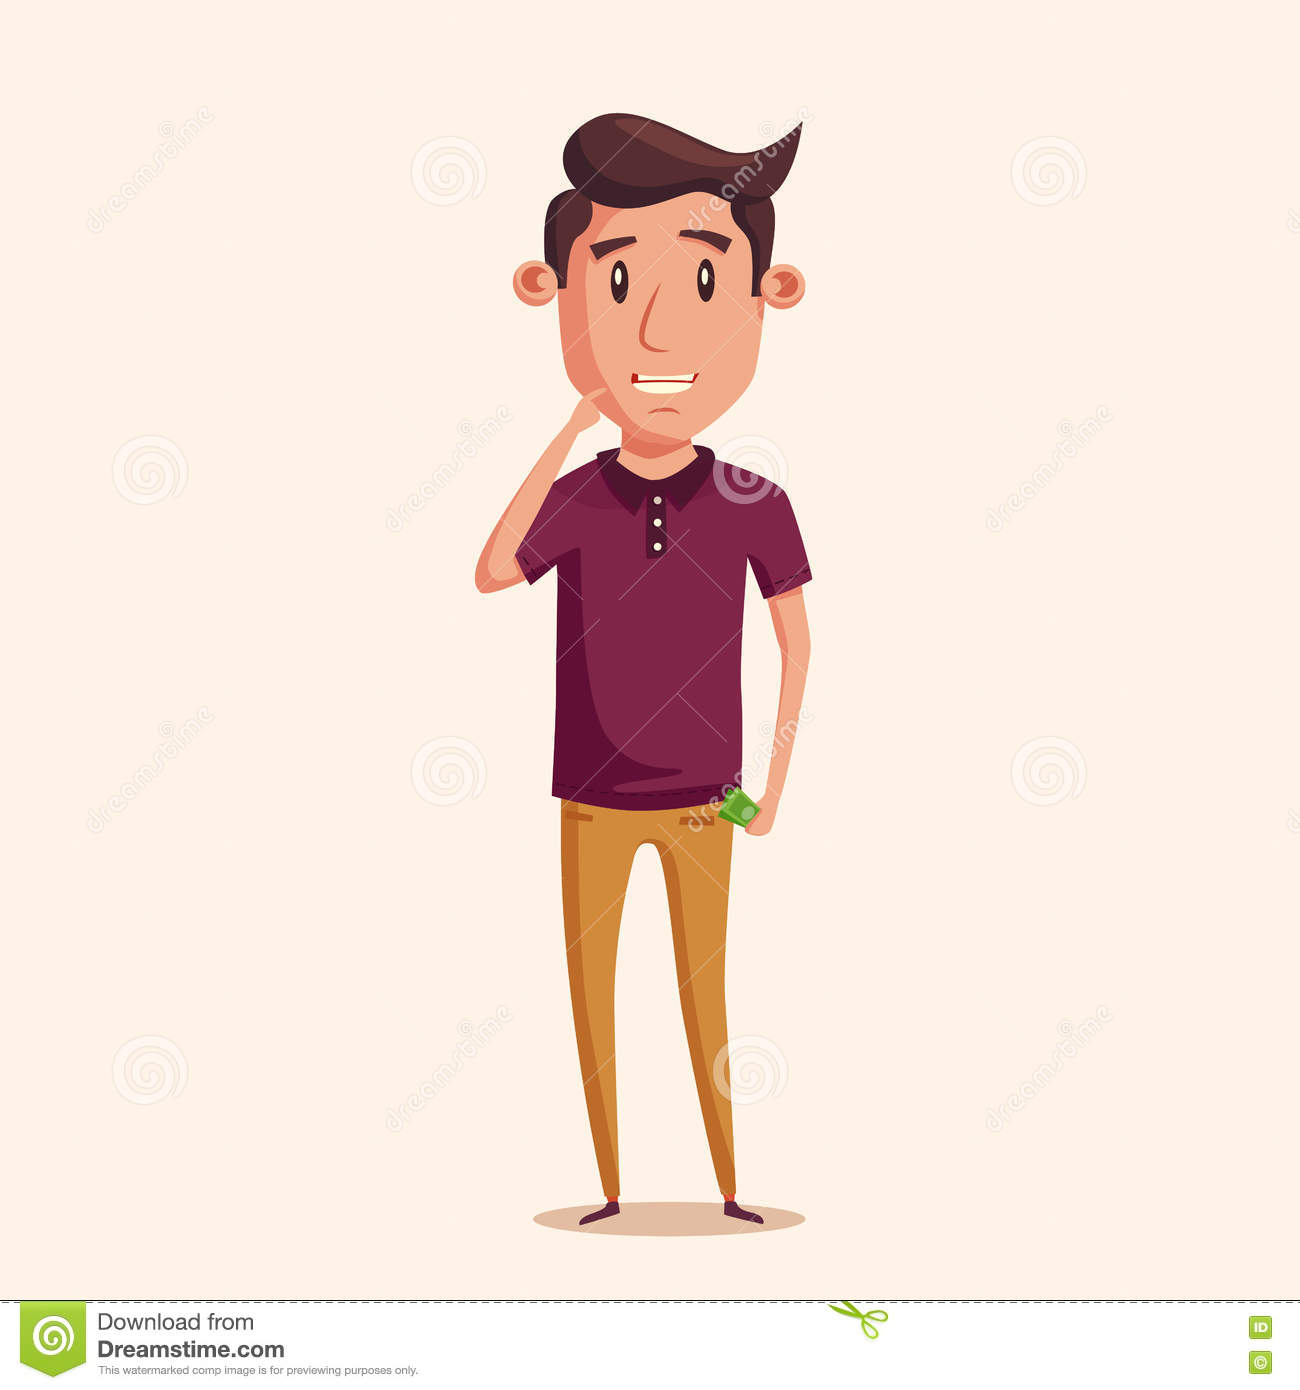 Cute Character Design Illustrator : Man thinking of choice money for spending vectro cartoon